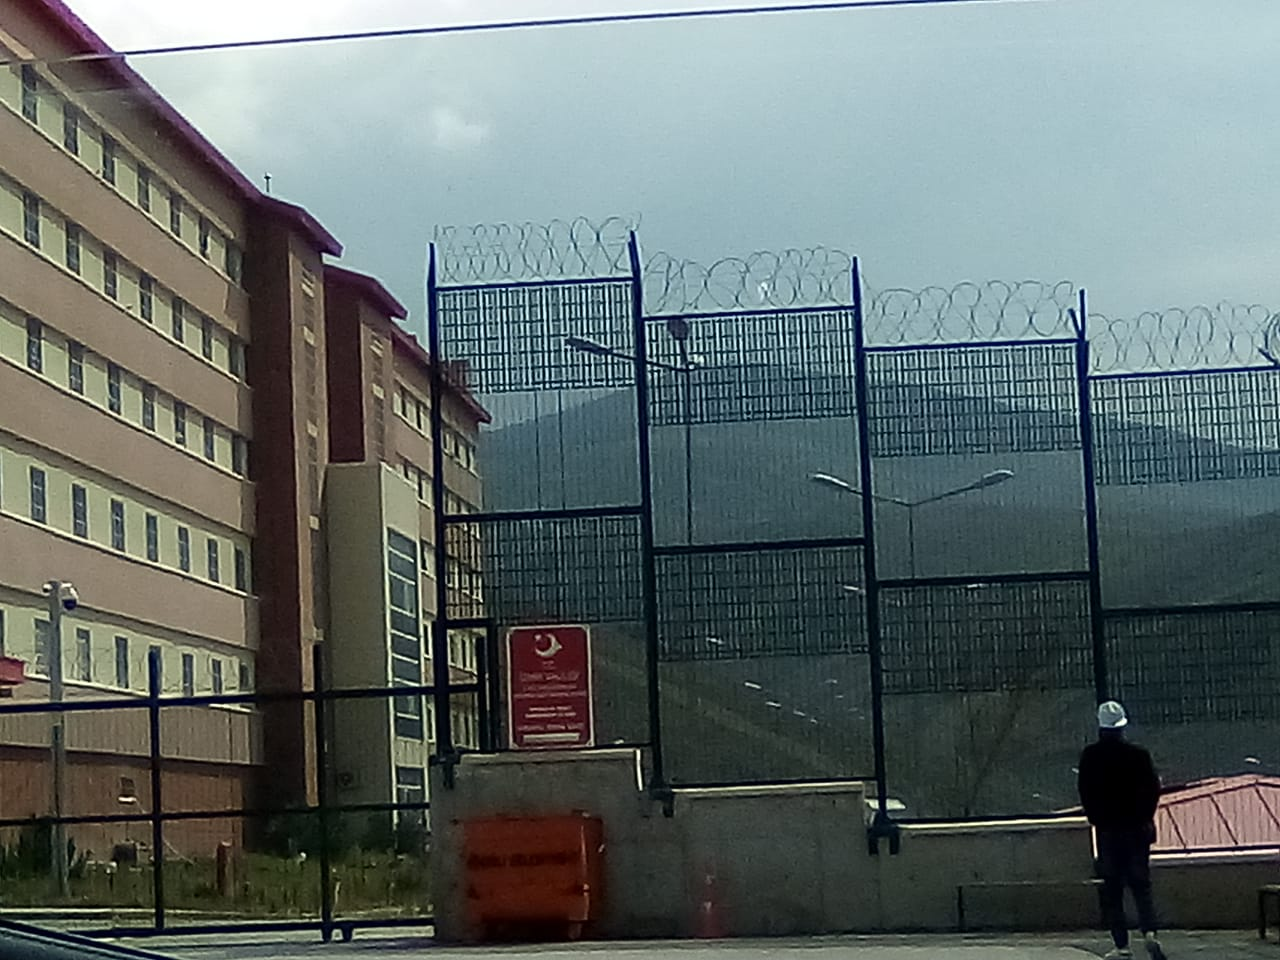 Surrendered to Harmandalı Removal Prison – How EU policies